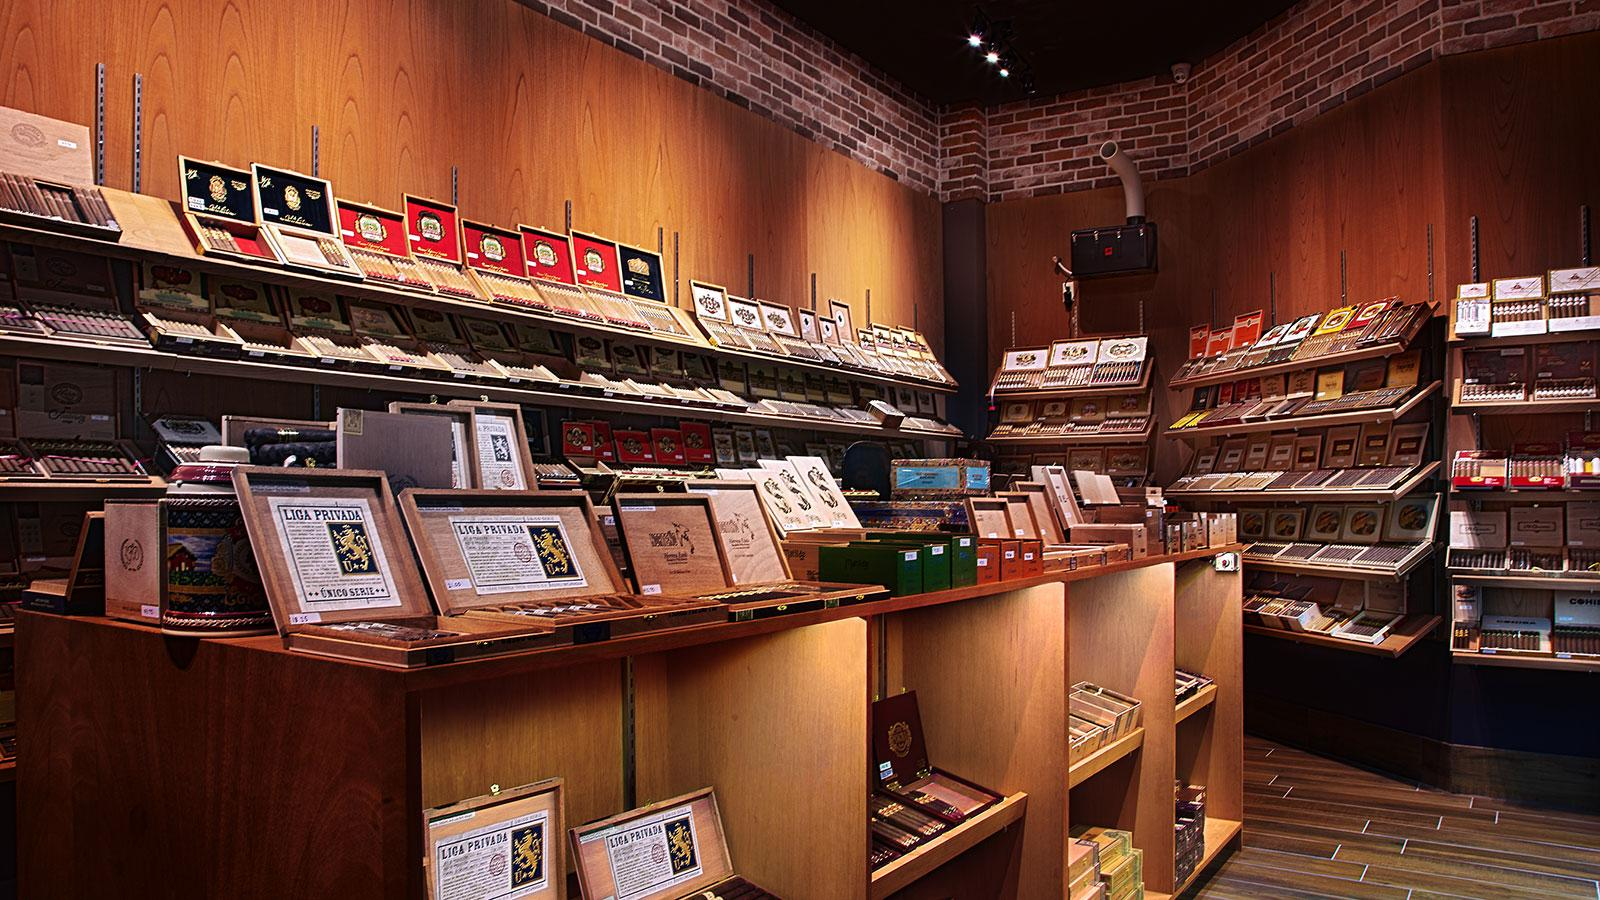 The humidor shelves are stocked with many great cigars, some of them hard to find.